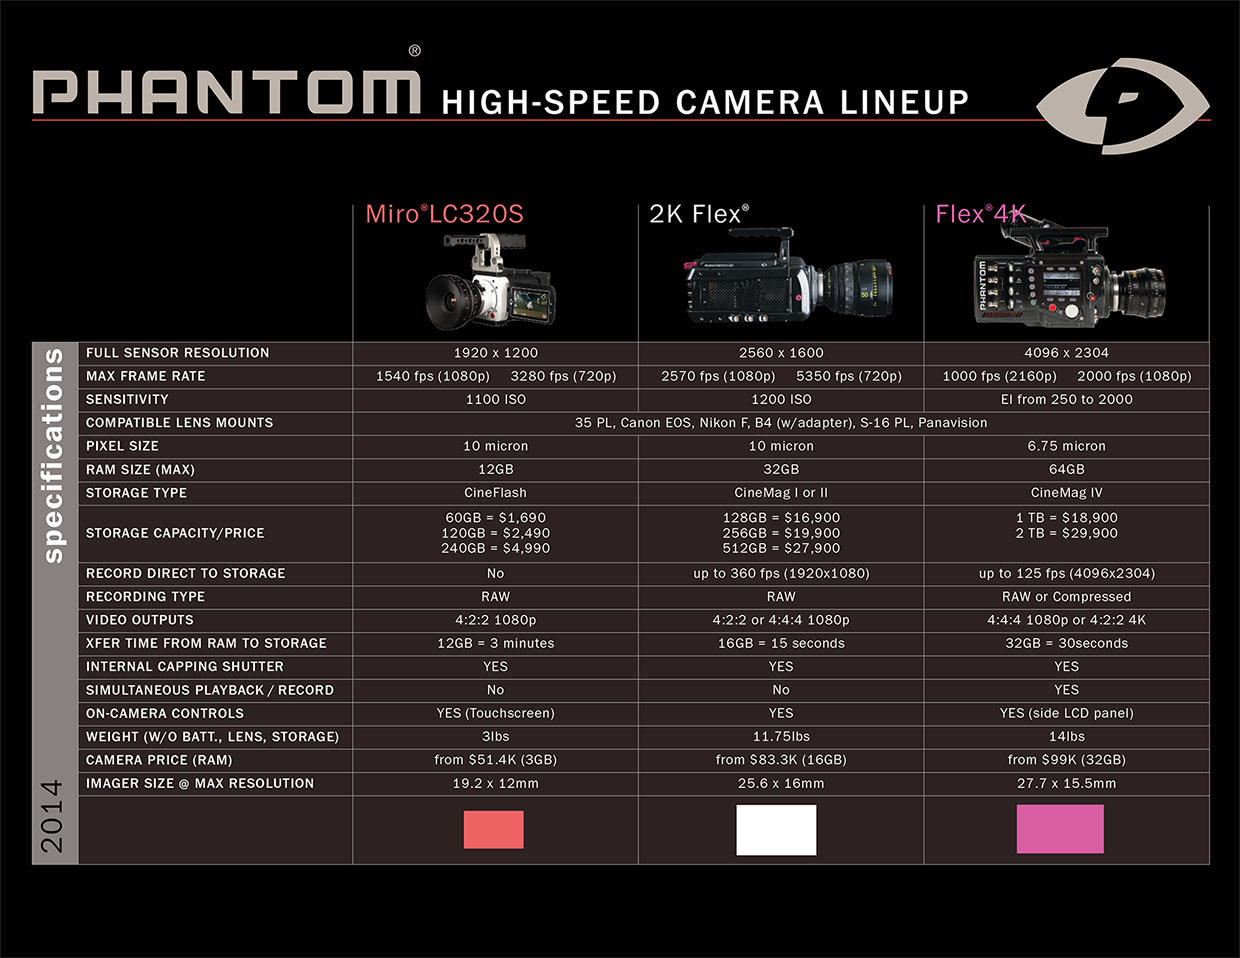 Phantom High-Speed Comparison Chart